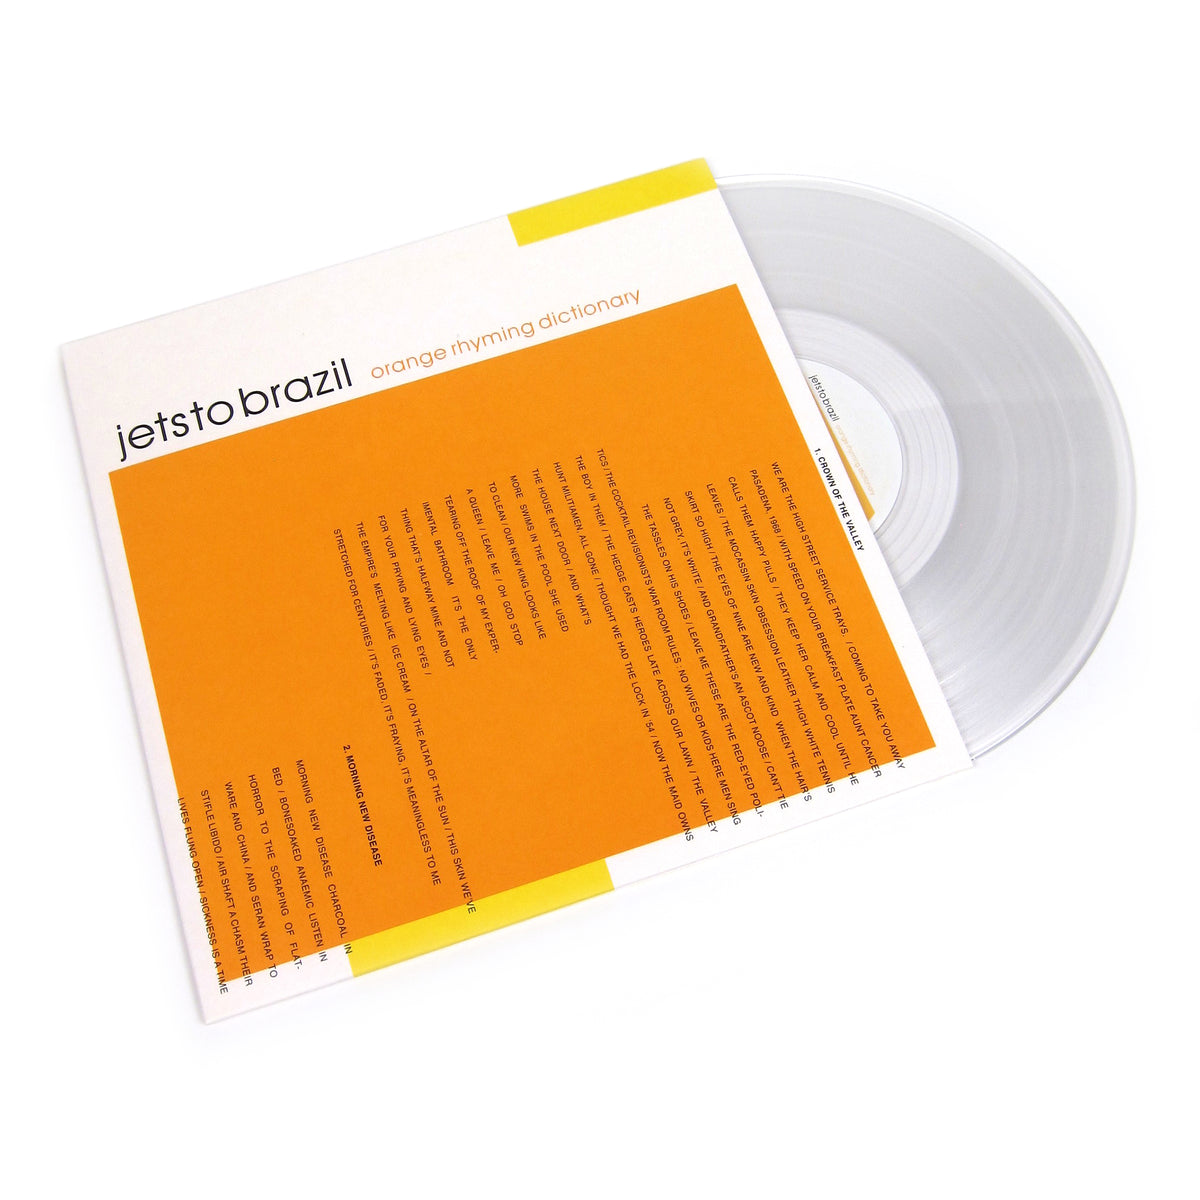 Jets To Brazil: Orange Rhyming Dictionary (Colored Vinyl) Vinyl 2LP